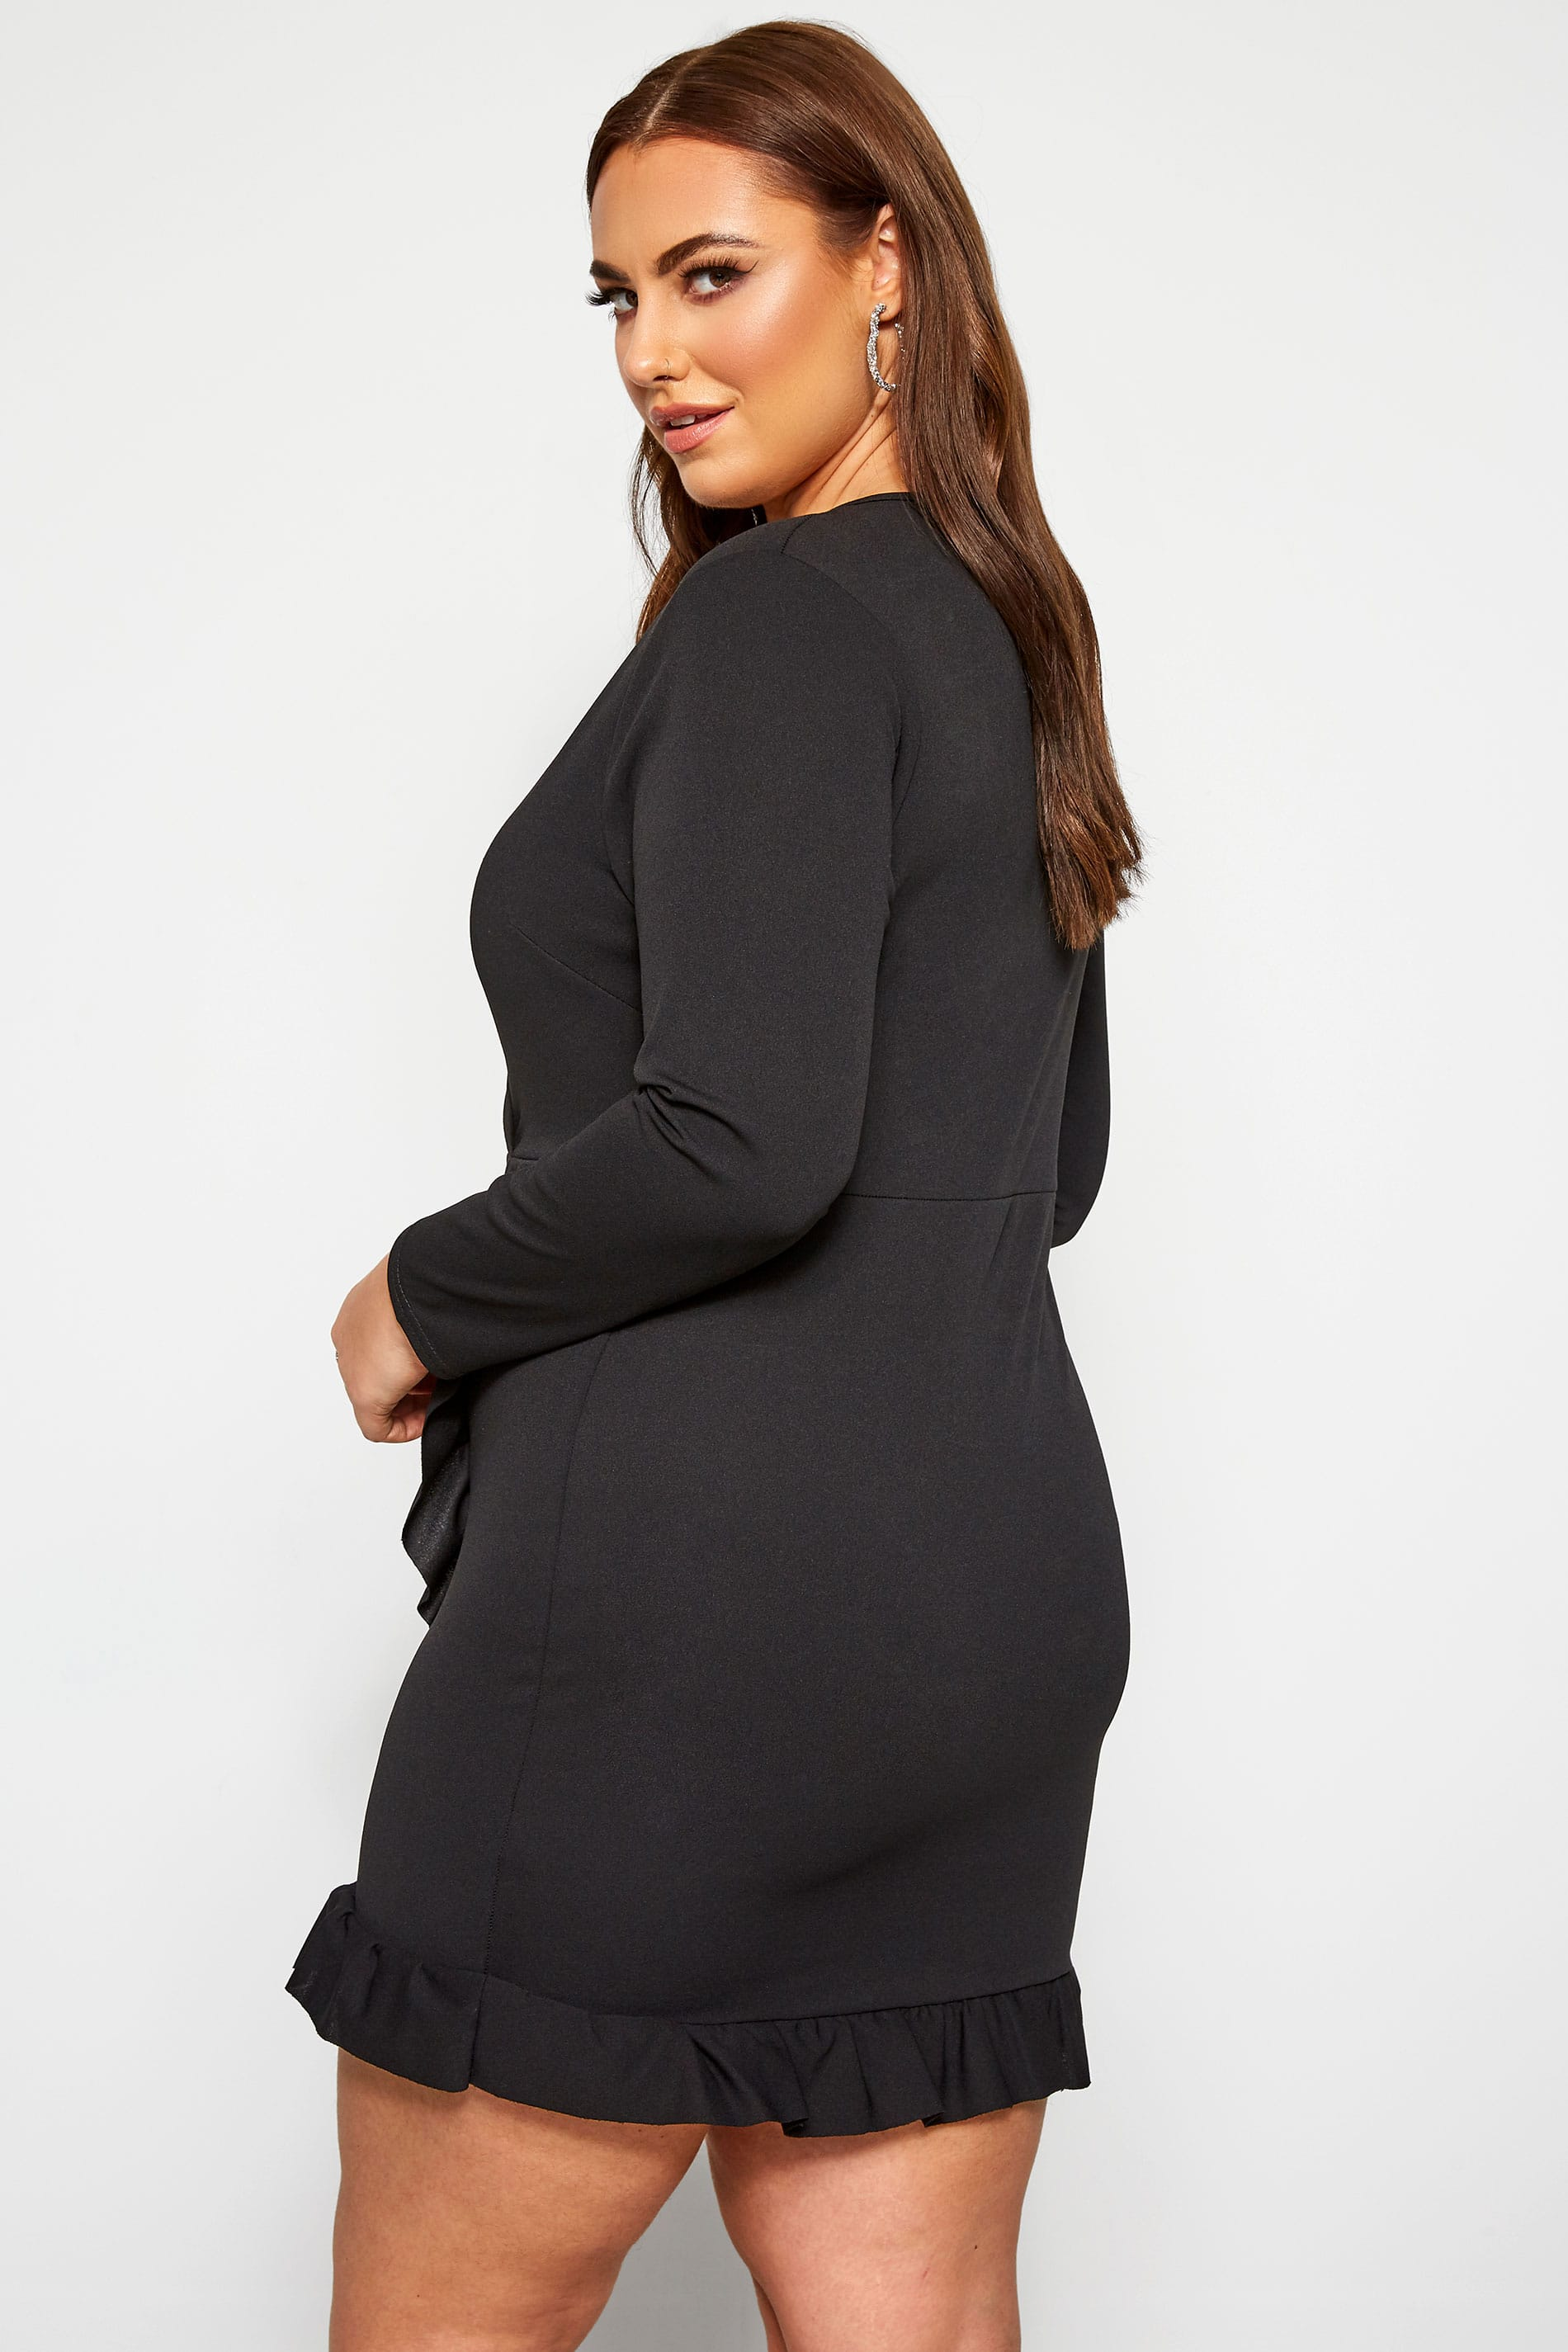 LIMITED COLLECTION Black Milkmaid Bodycon Dress | Yours